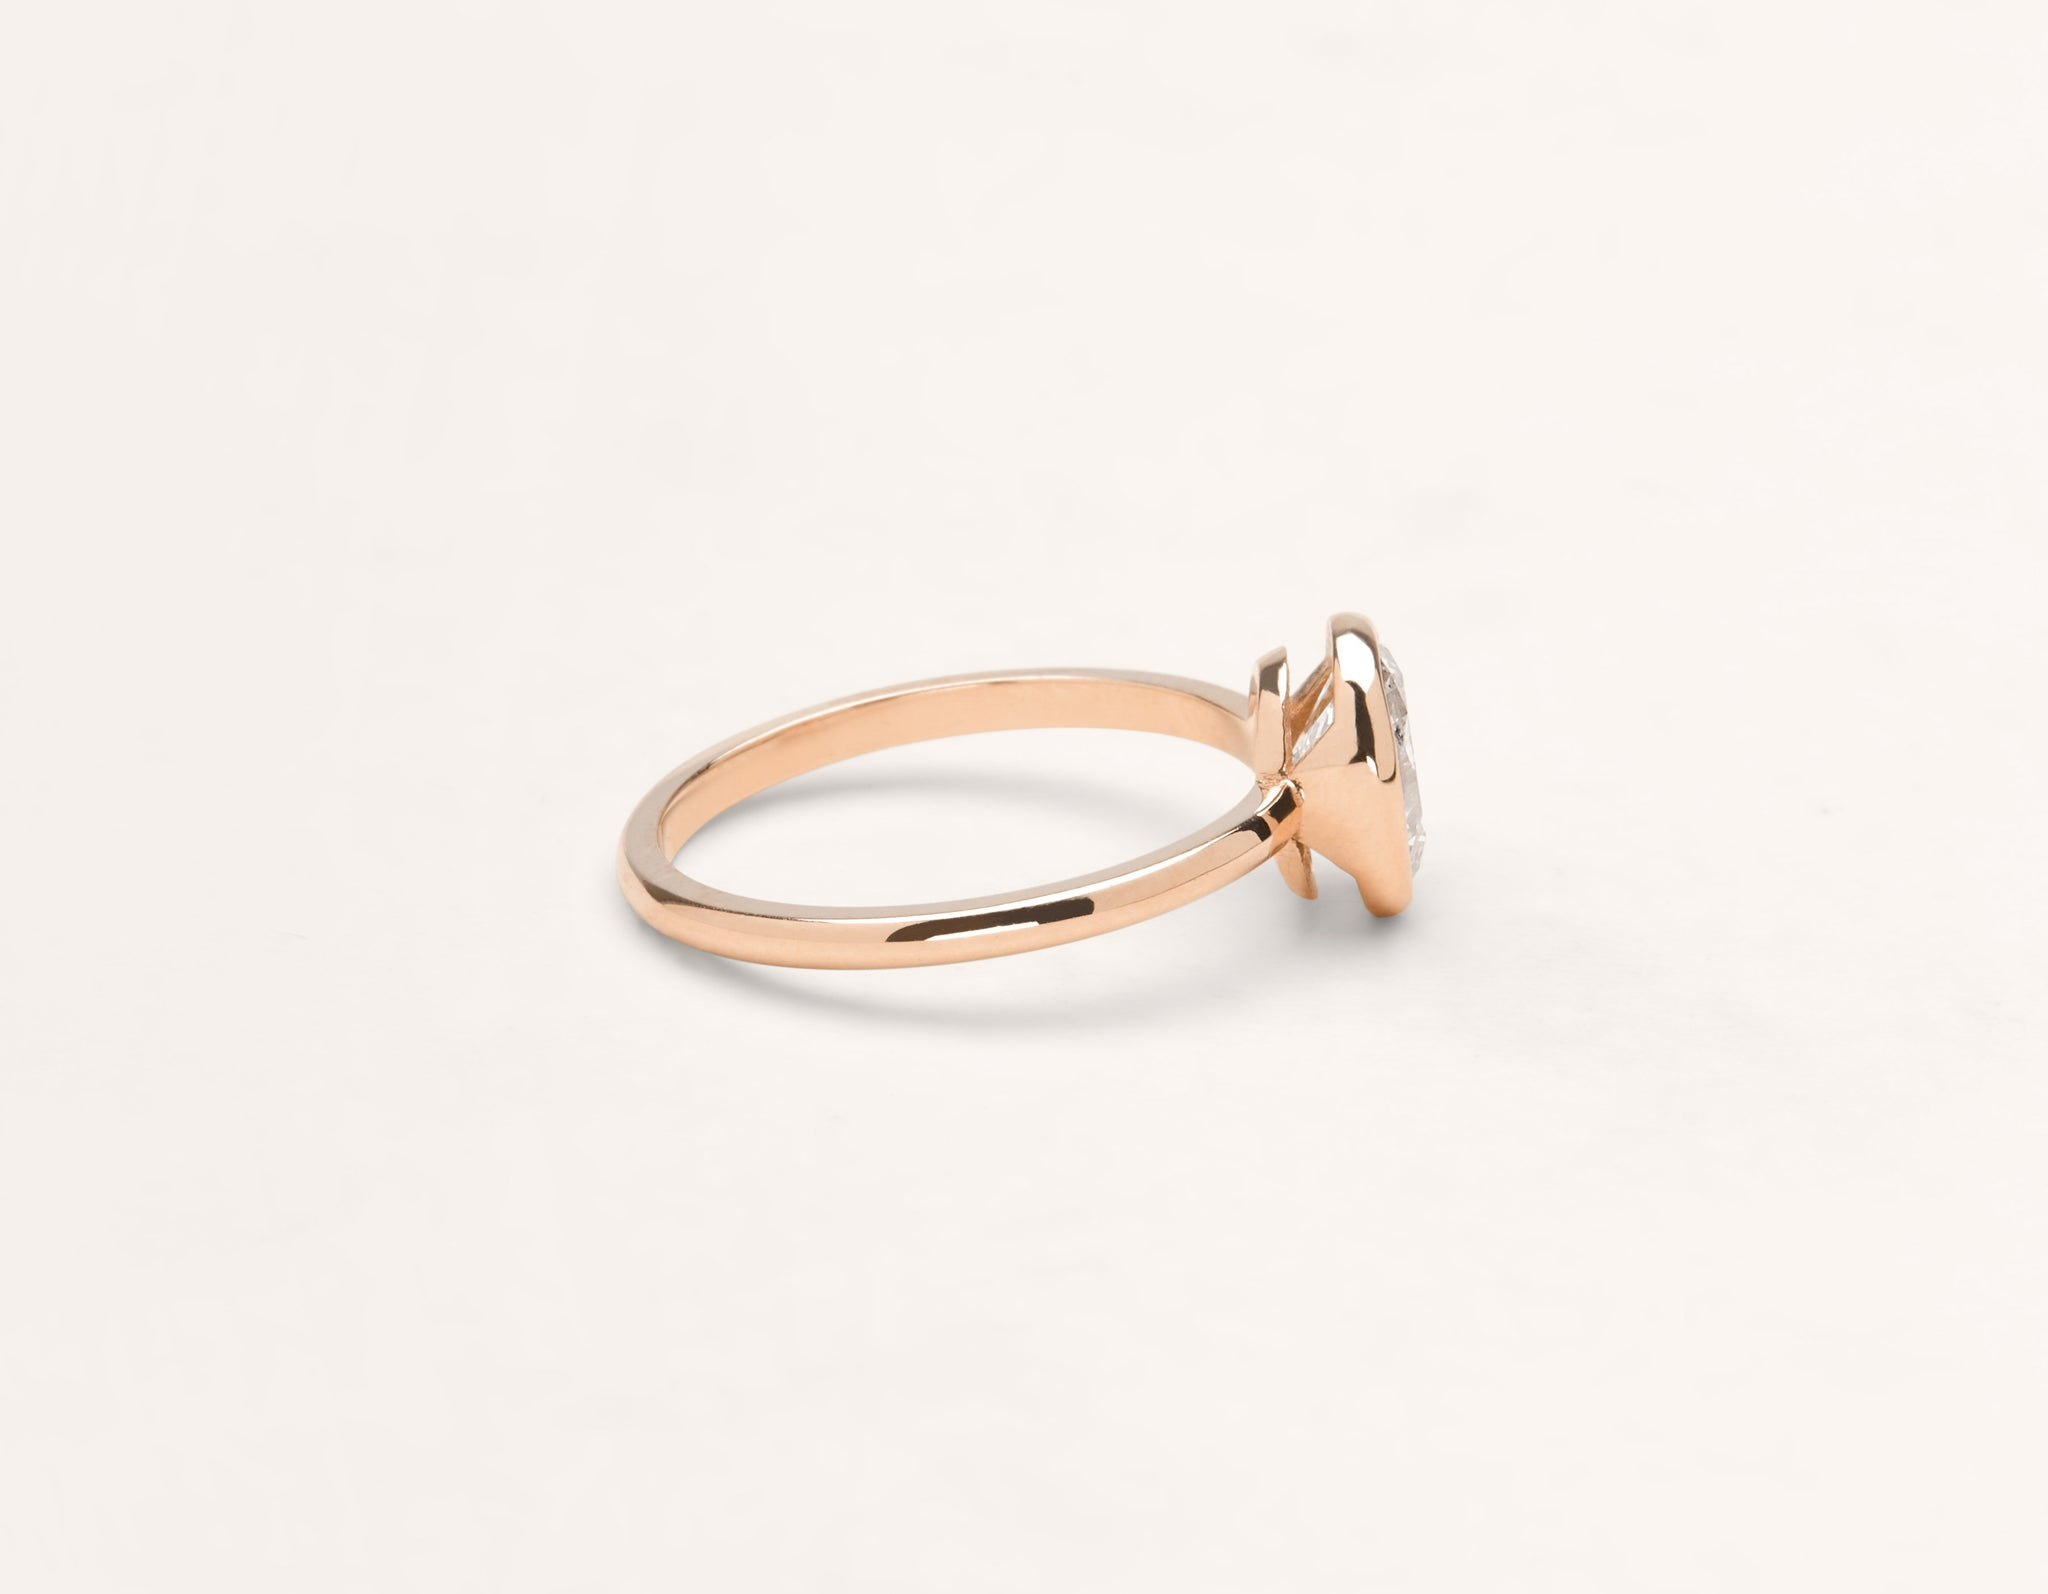 Simple modern 18k solid rose gold 1 carat Oval bezel diamond engagement ring Vrai & Oro